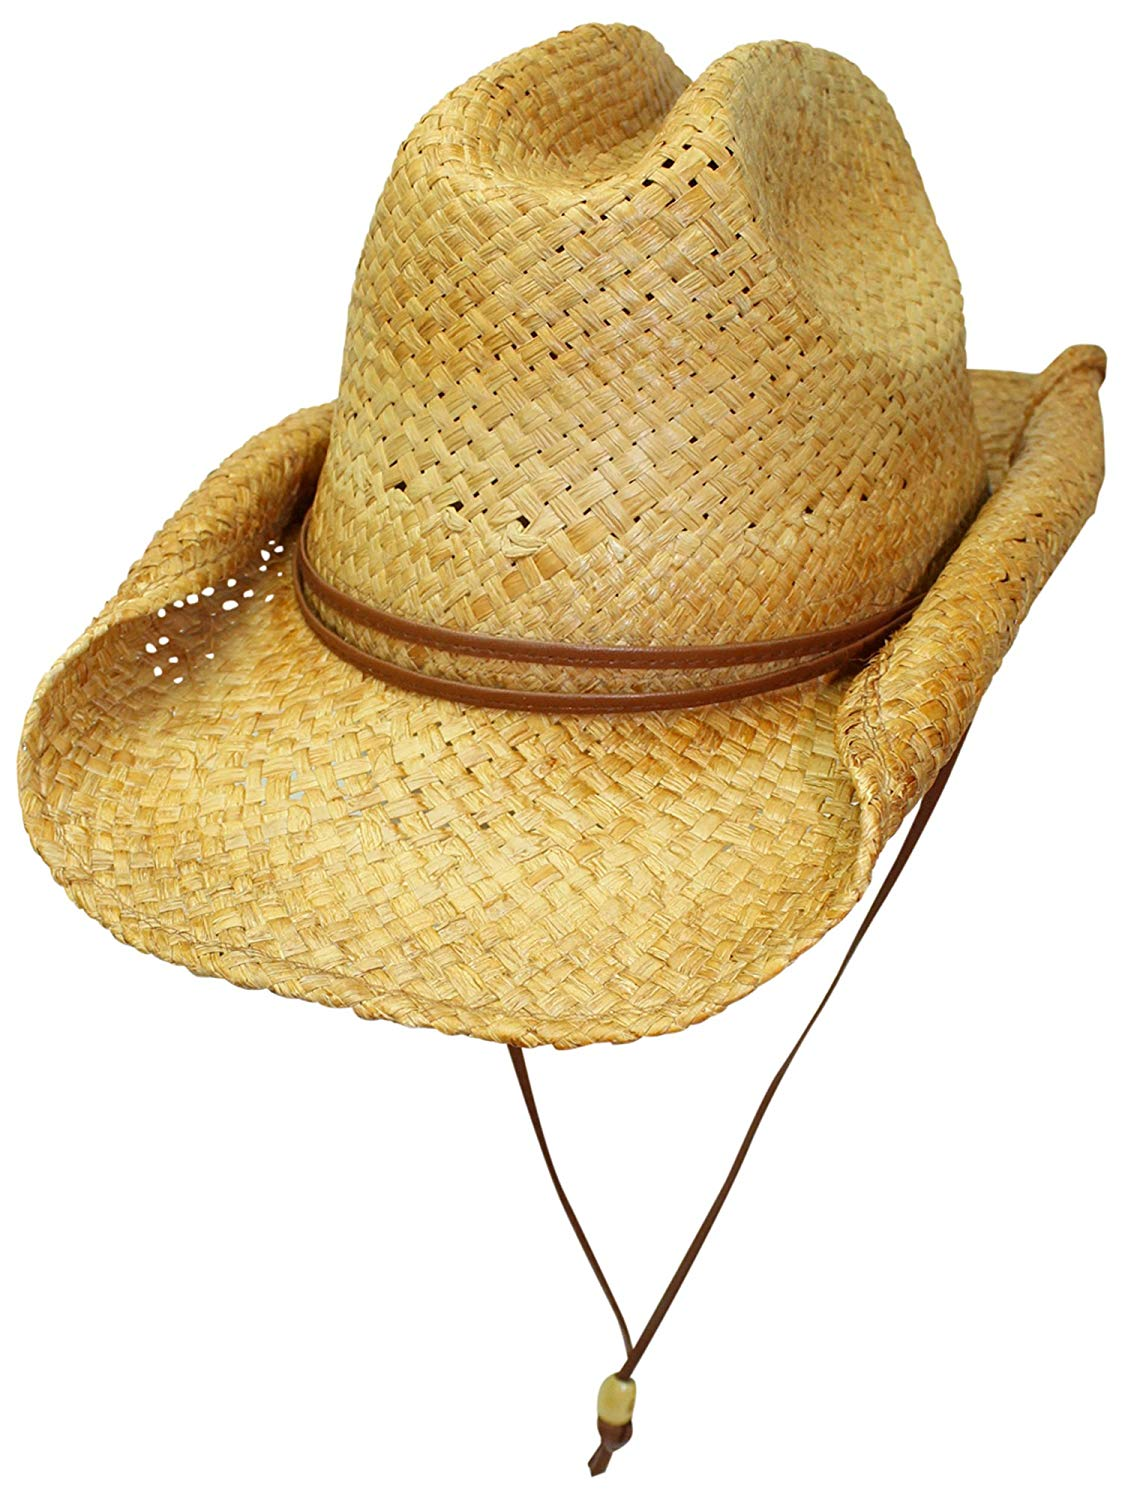 Luxury Divas Bended Brim Rocker Style Distressed Straw Cowboy Hat With Chin Cord